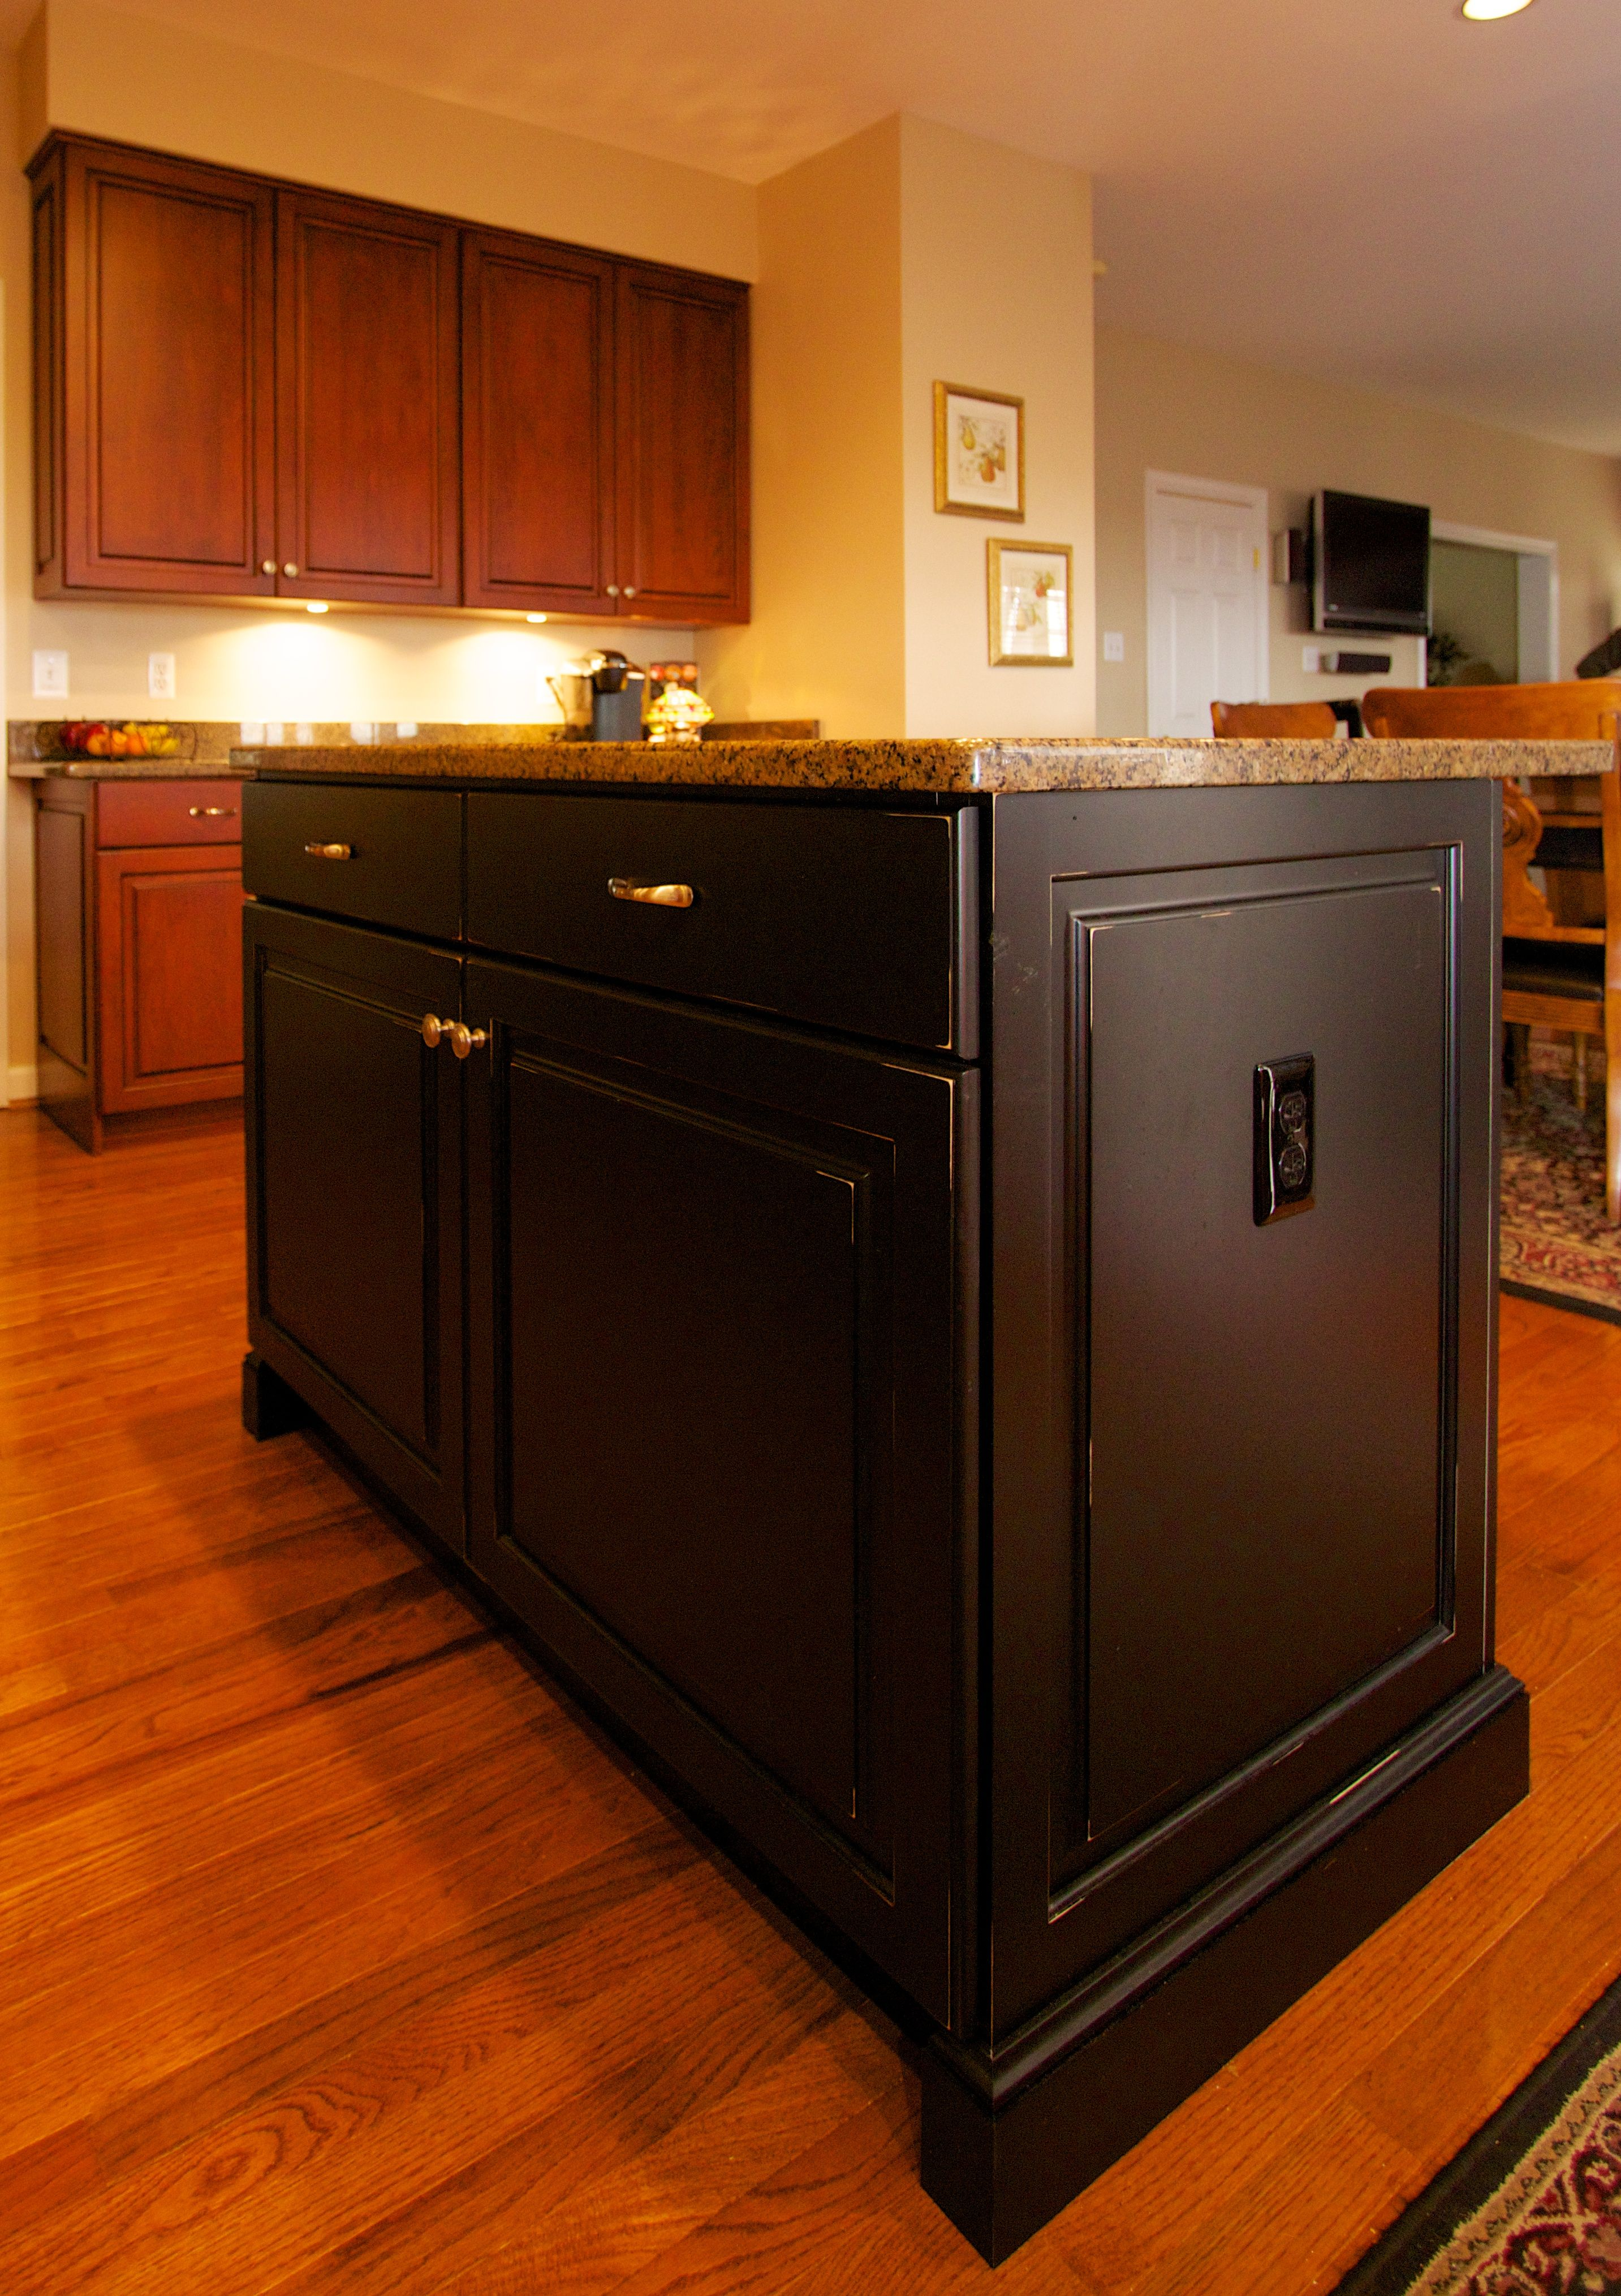 Home Page Kitchensaver Custom Kitchen Cabinets Kitchen Cabinets And Countertops Kitchen Concepts